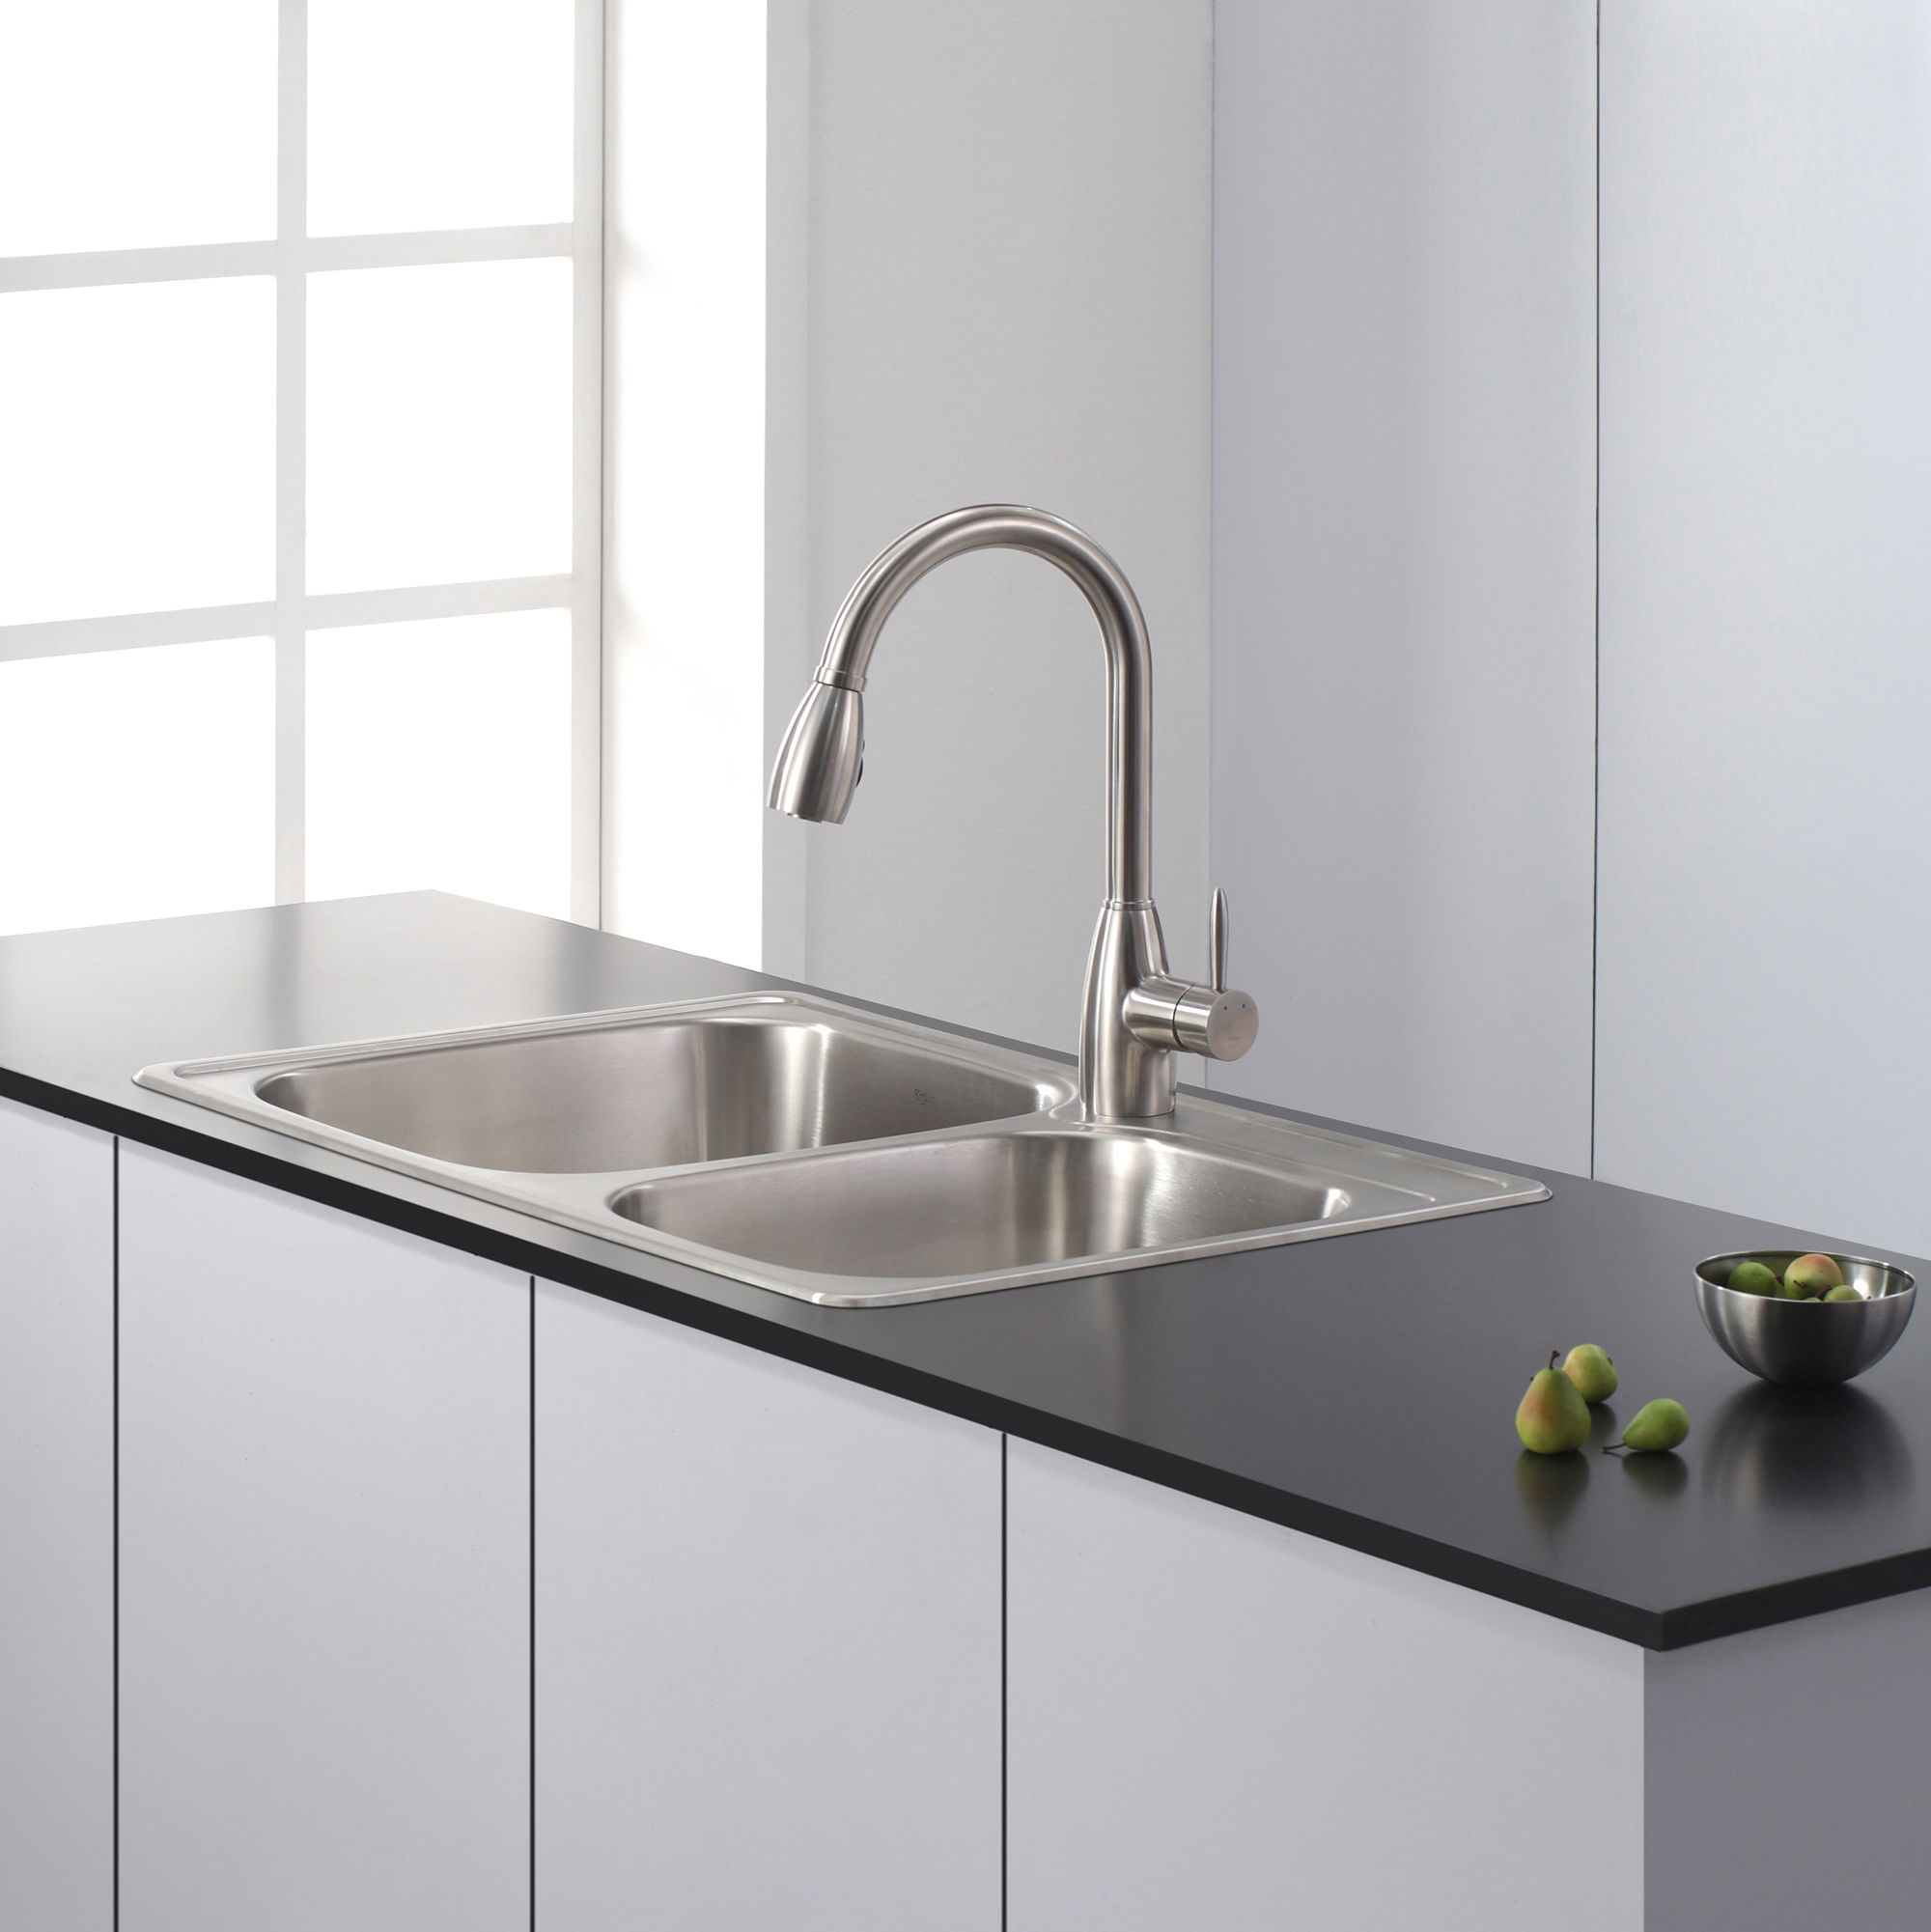 Kraus KPF 2130 Stainless Steel Pullout Spray Kitchen Faucet With Swiveling  Spout And Dual Function Spray Head   FaucetDirect.com